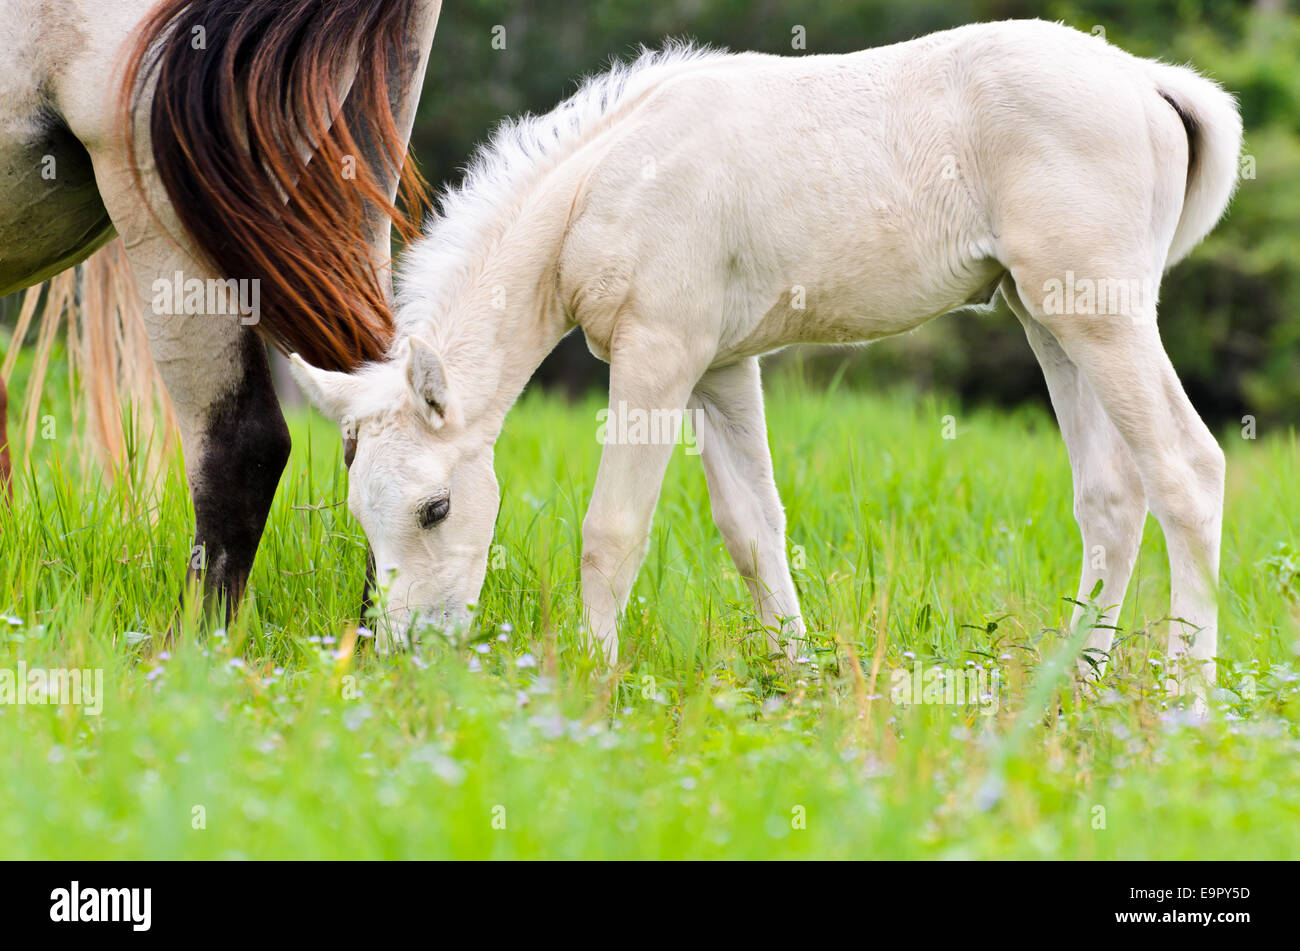 Baby Horse Eating High Resolution Stock Photography And Images Alamy